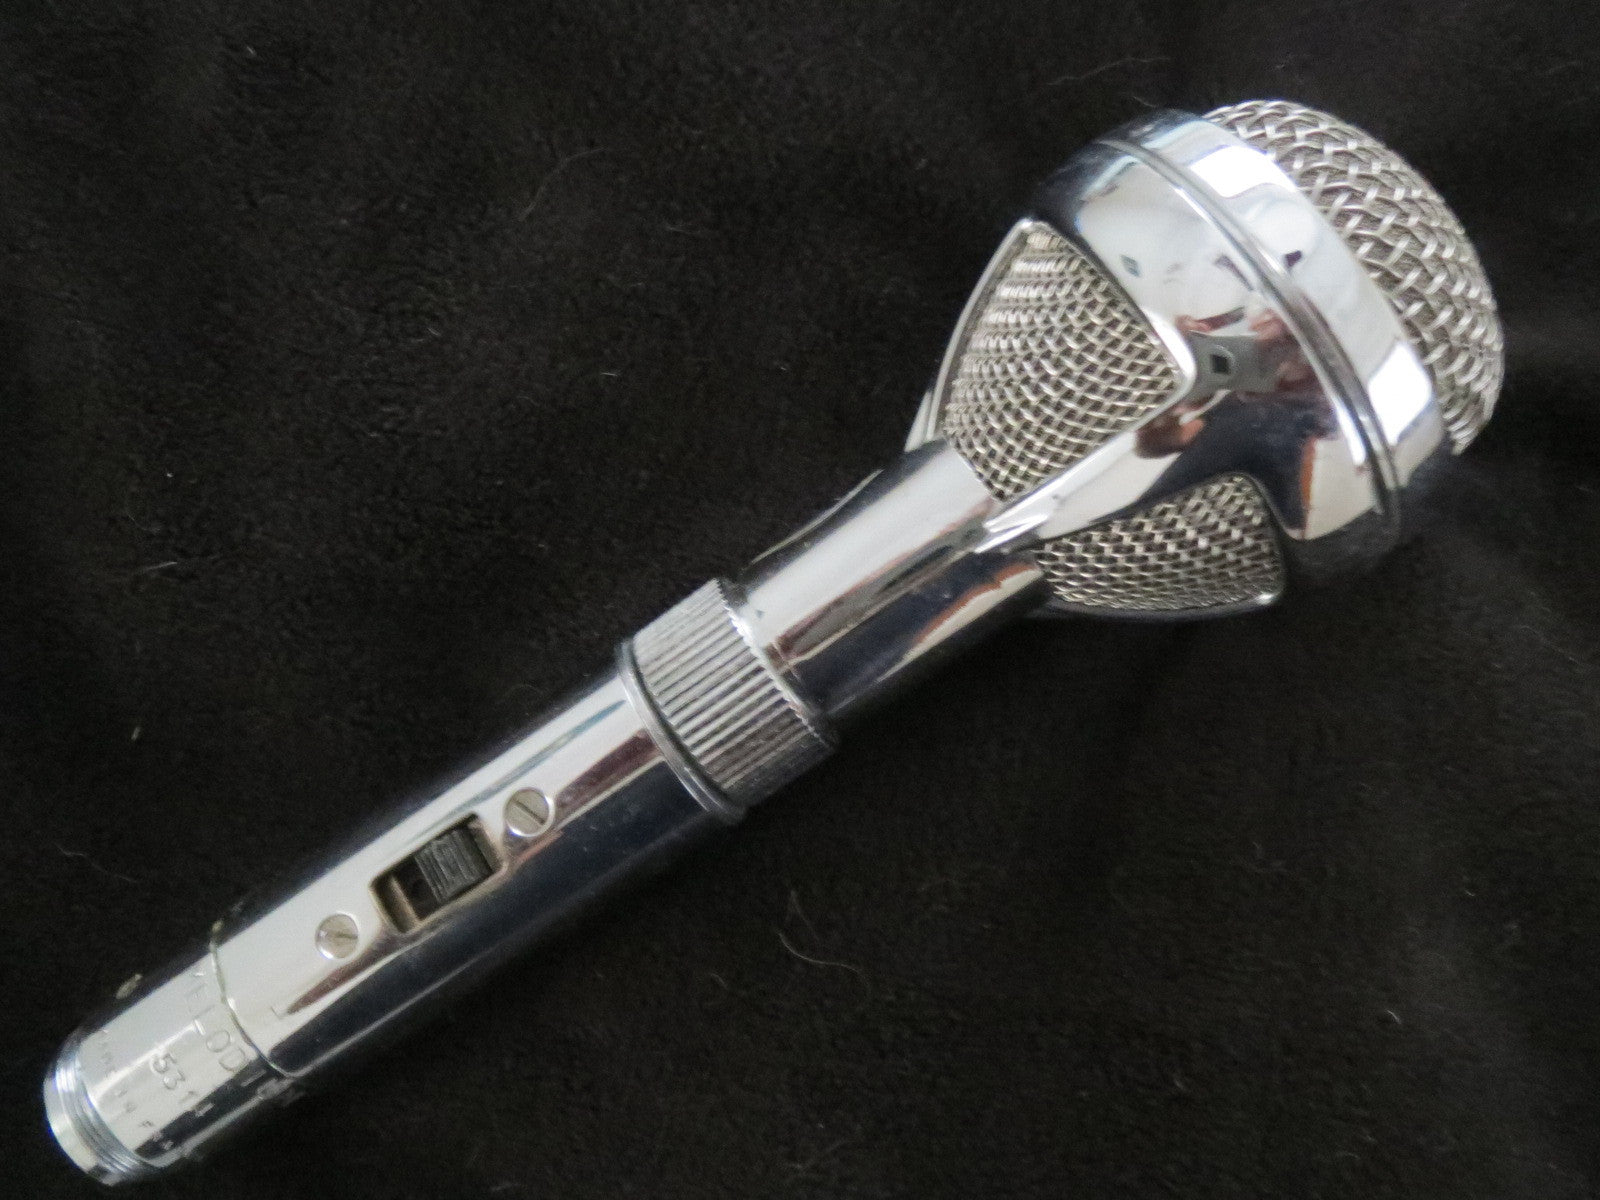 BOUYER/MELODIUM GM709 VINTAGE FRENCH CARDIOID DYNAMIC MICROPHONE WITH XLR CABLE